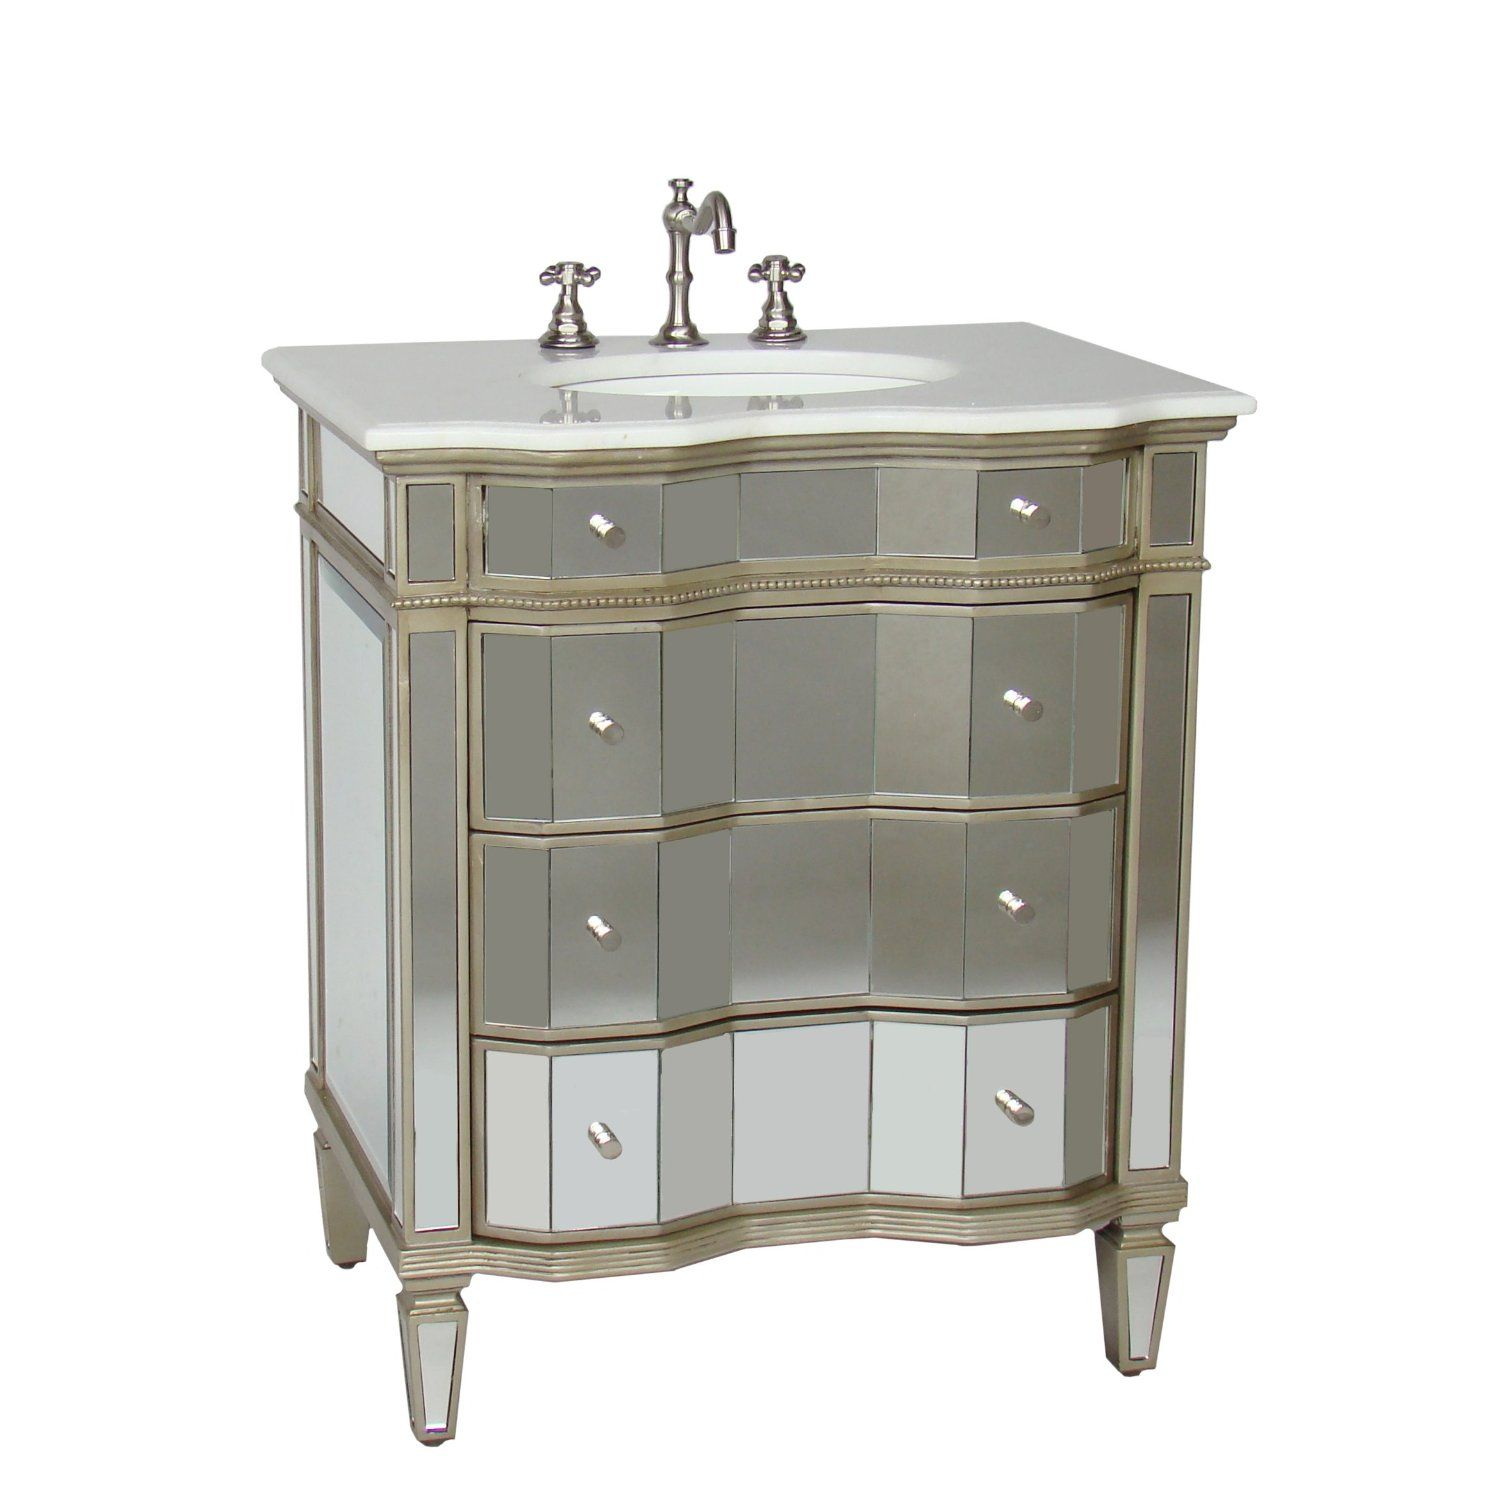 Awe Inspiring Mirrored W Silver Trim Bathroom Sink Vanity Cabinet 2 For Download Free Architecture Designs Grimeyleaguecom